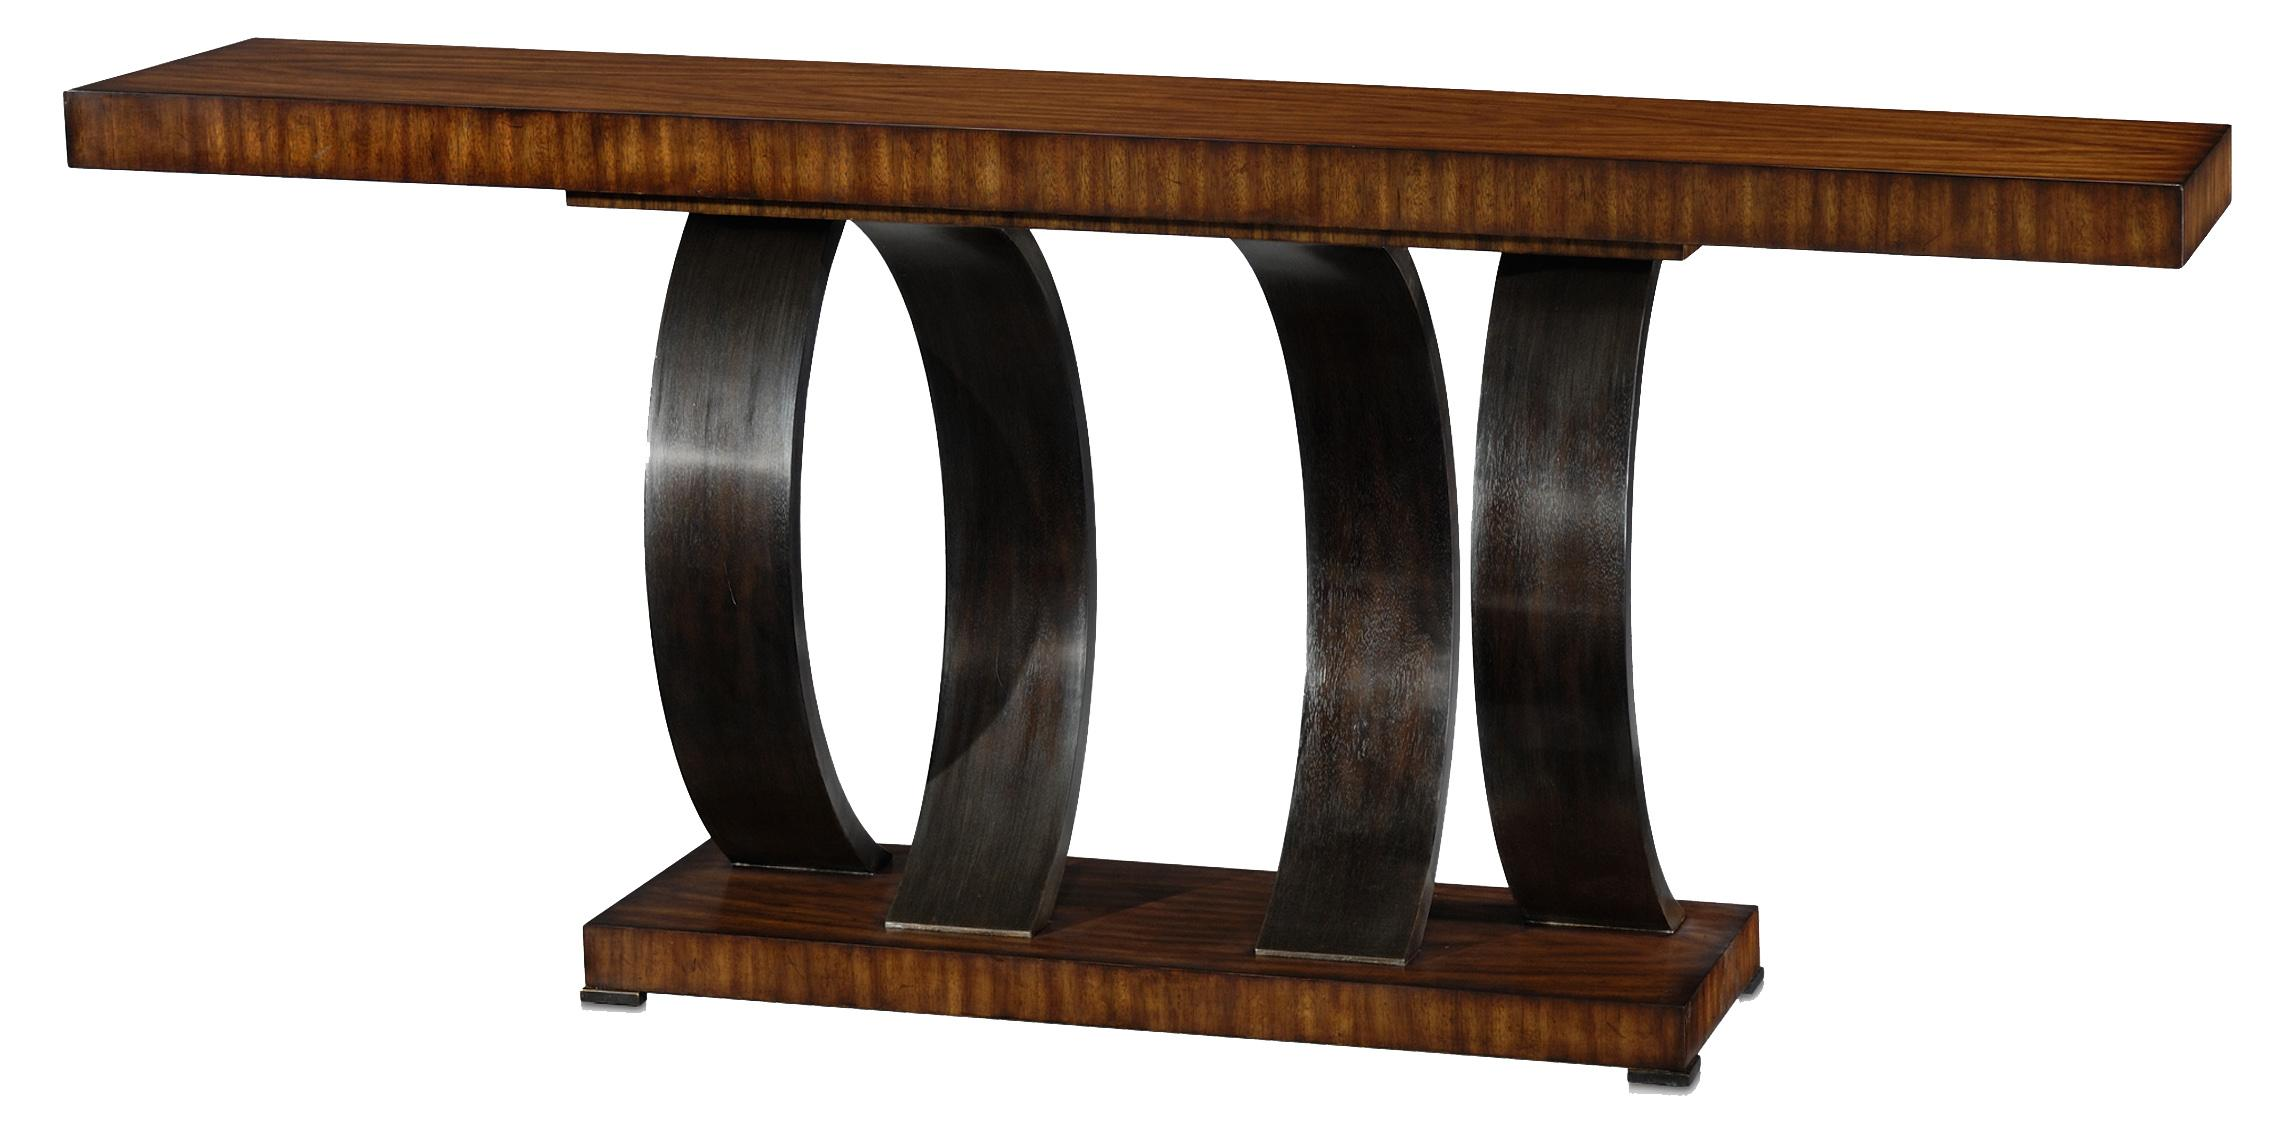 Theodore Alexander Vanucci Eclectics Walnut Console Table - Item Number: 5305-181